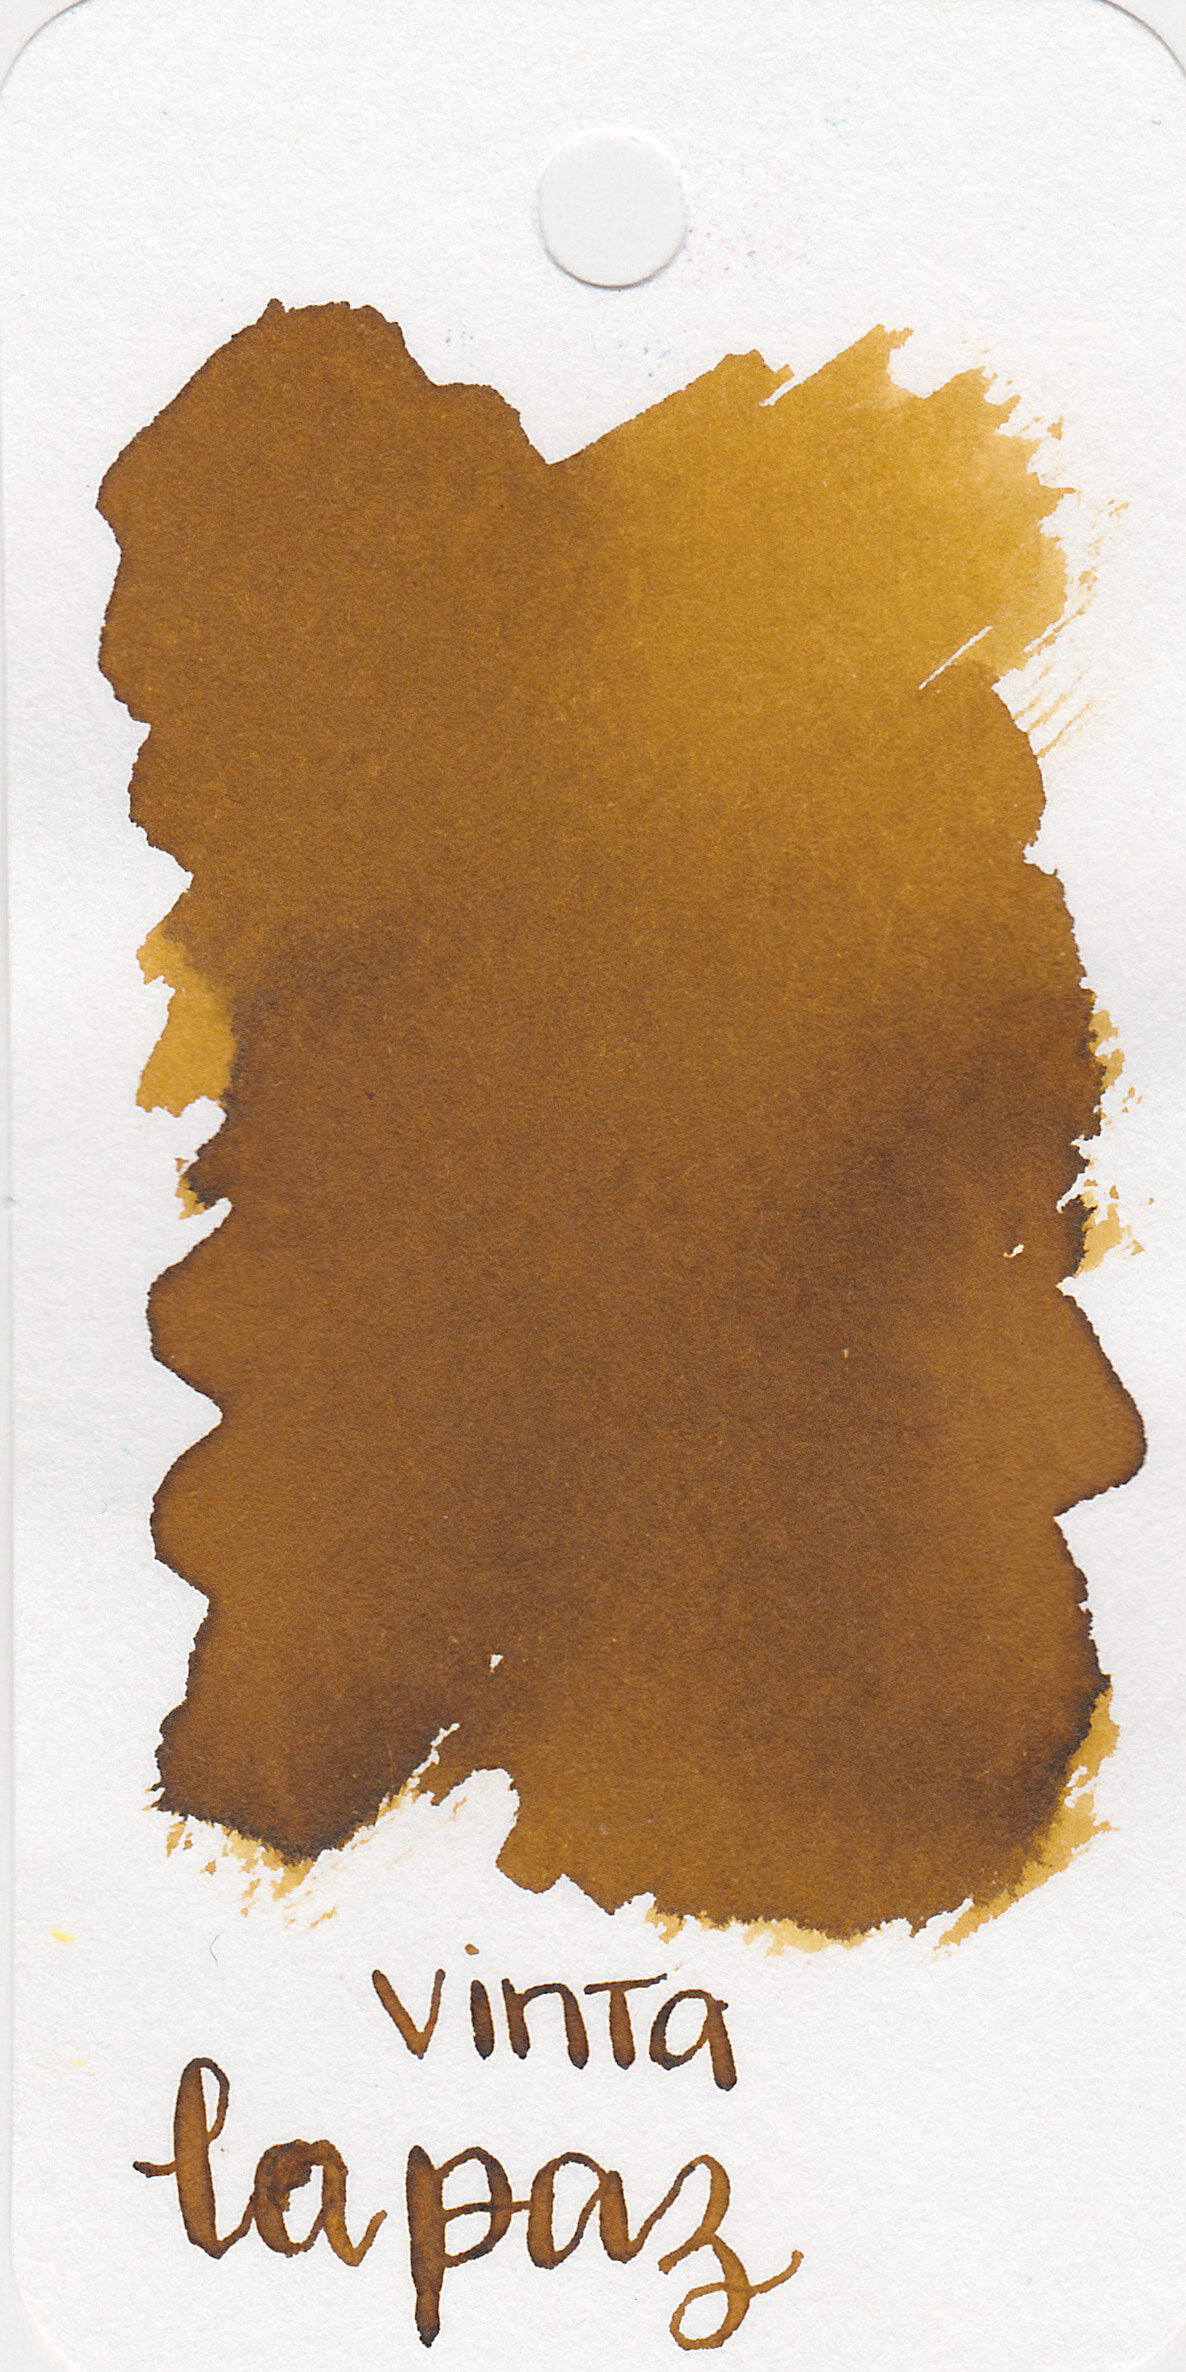 The color: - La Paz is a dark mustard yellow, almost a brown.